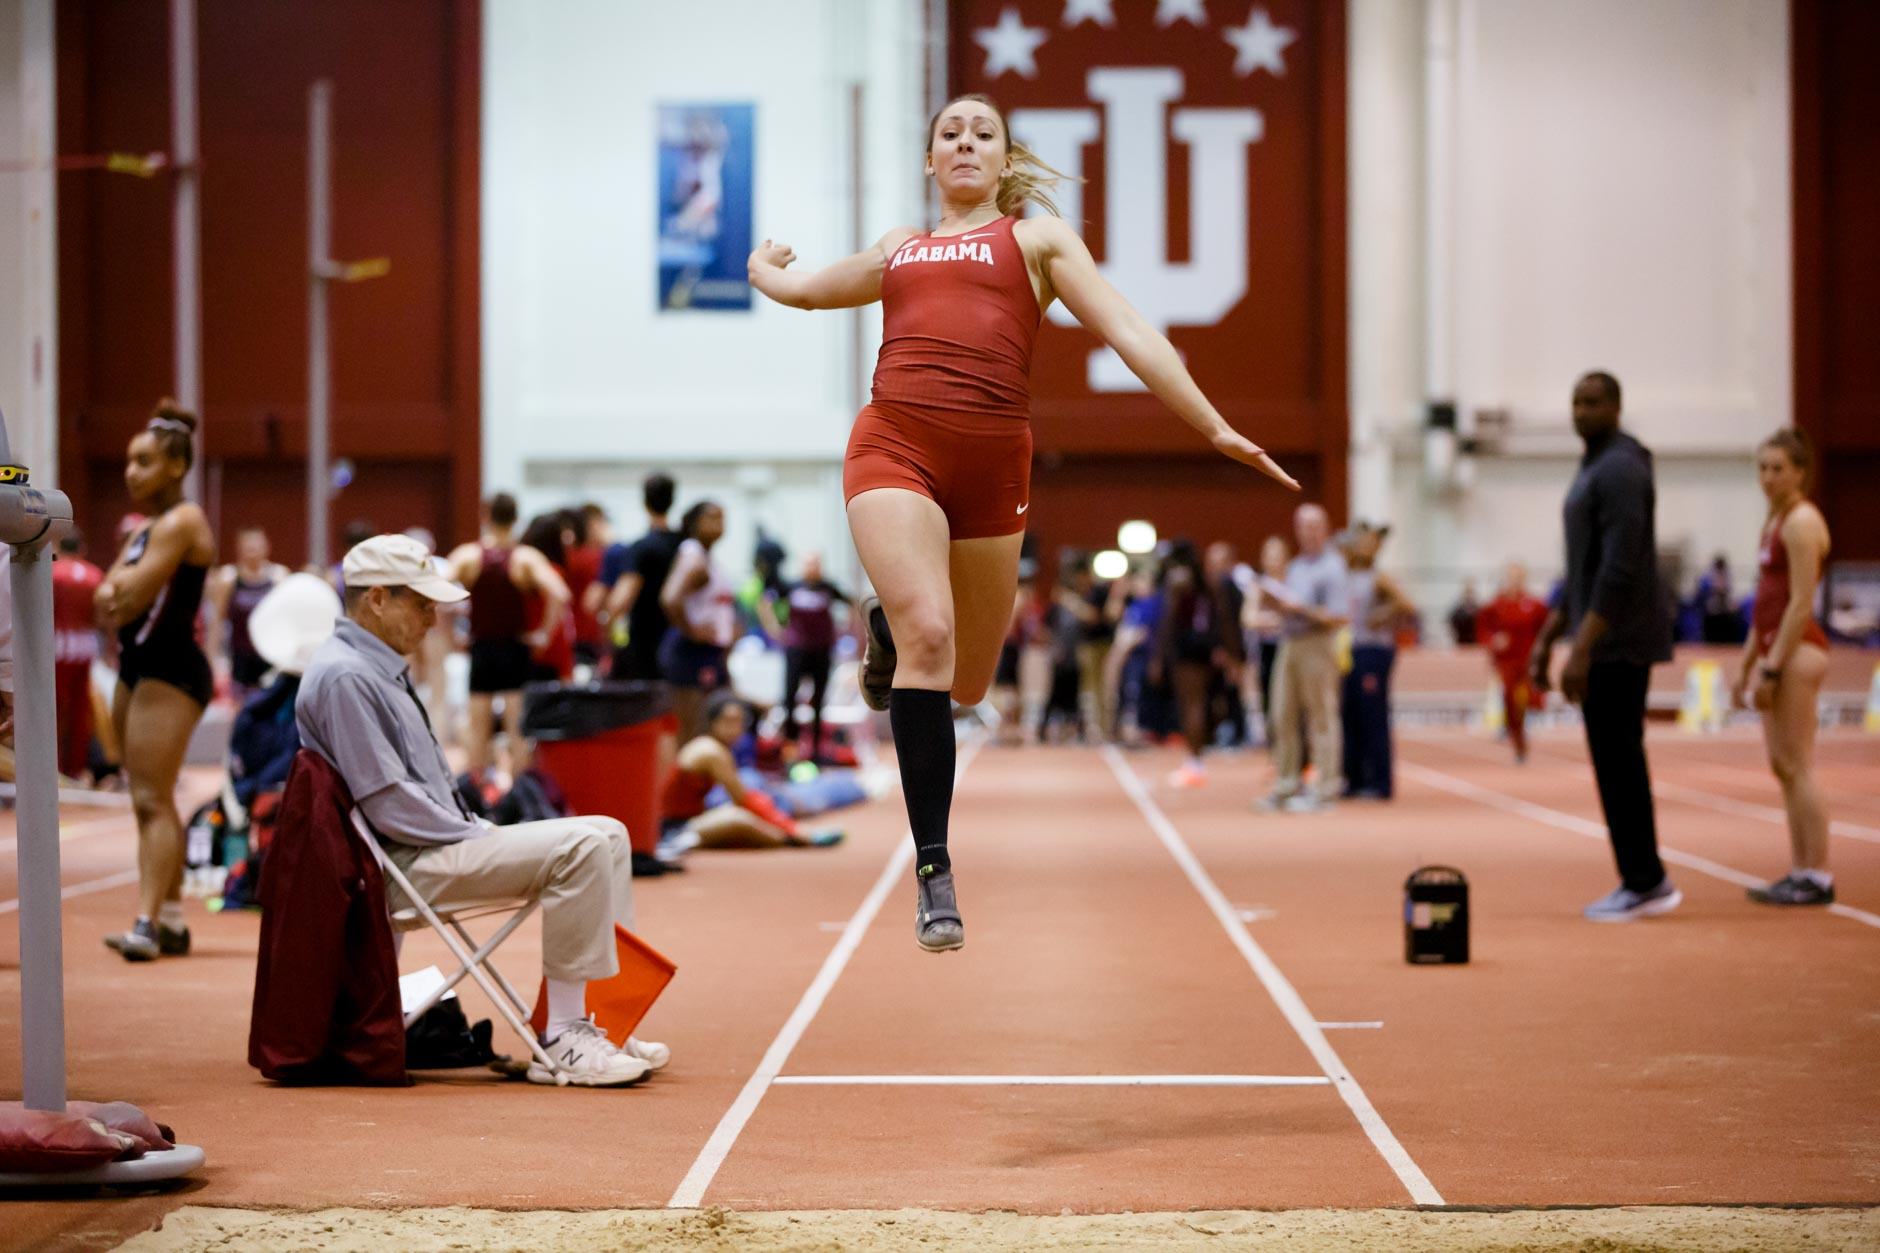 Alabama's Camille Kohtala competes in the long jump during the Indiana University Relays in Bloomington, Indiana on Friday, Jan. 31, 2020. (Photo by James Brosher)